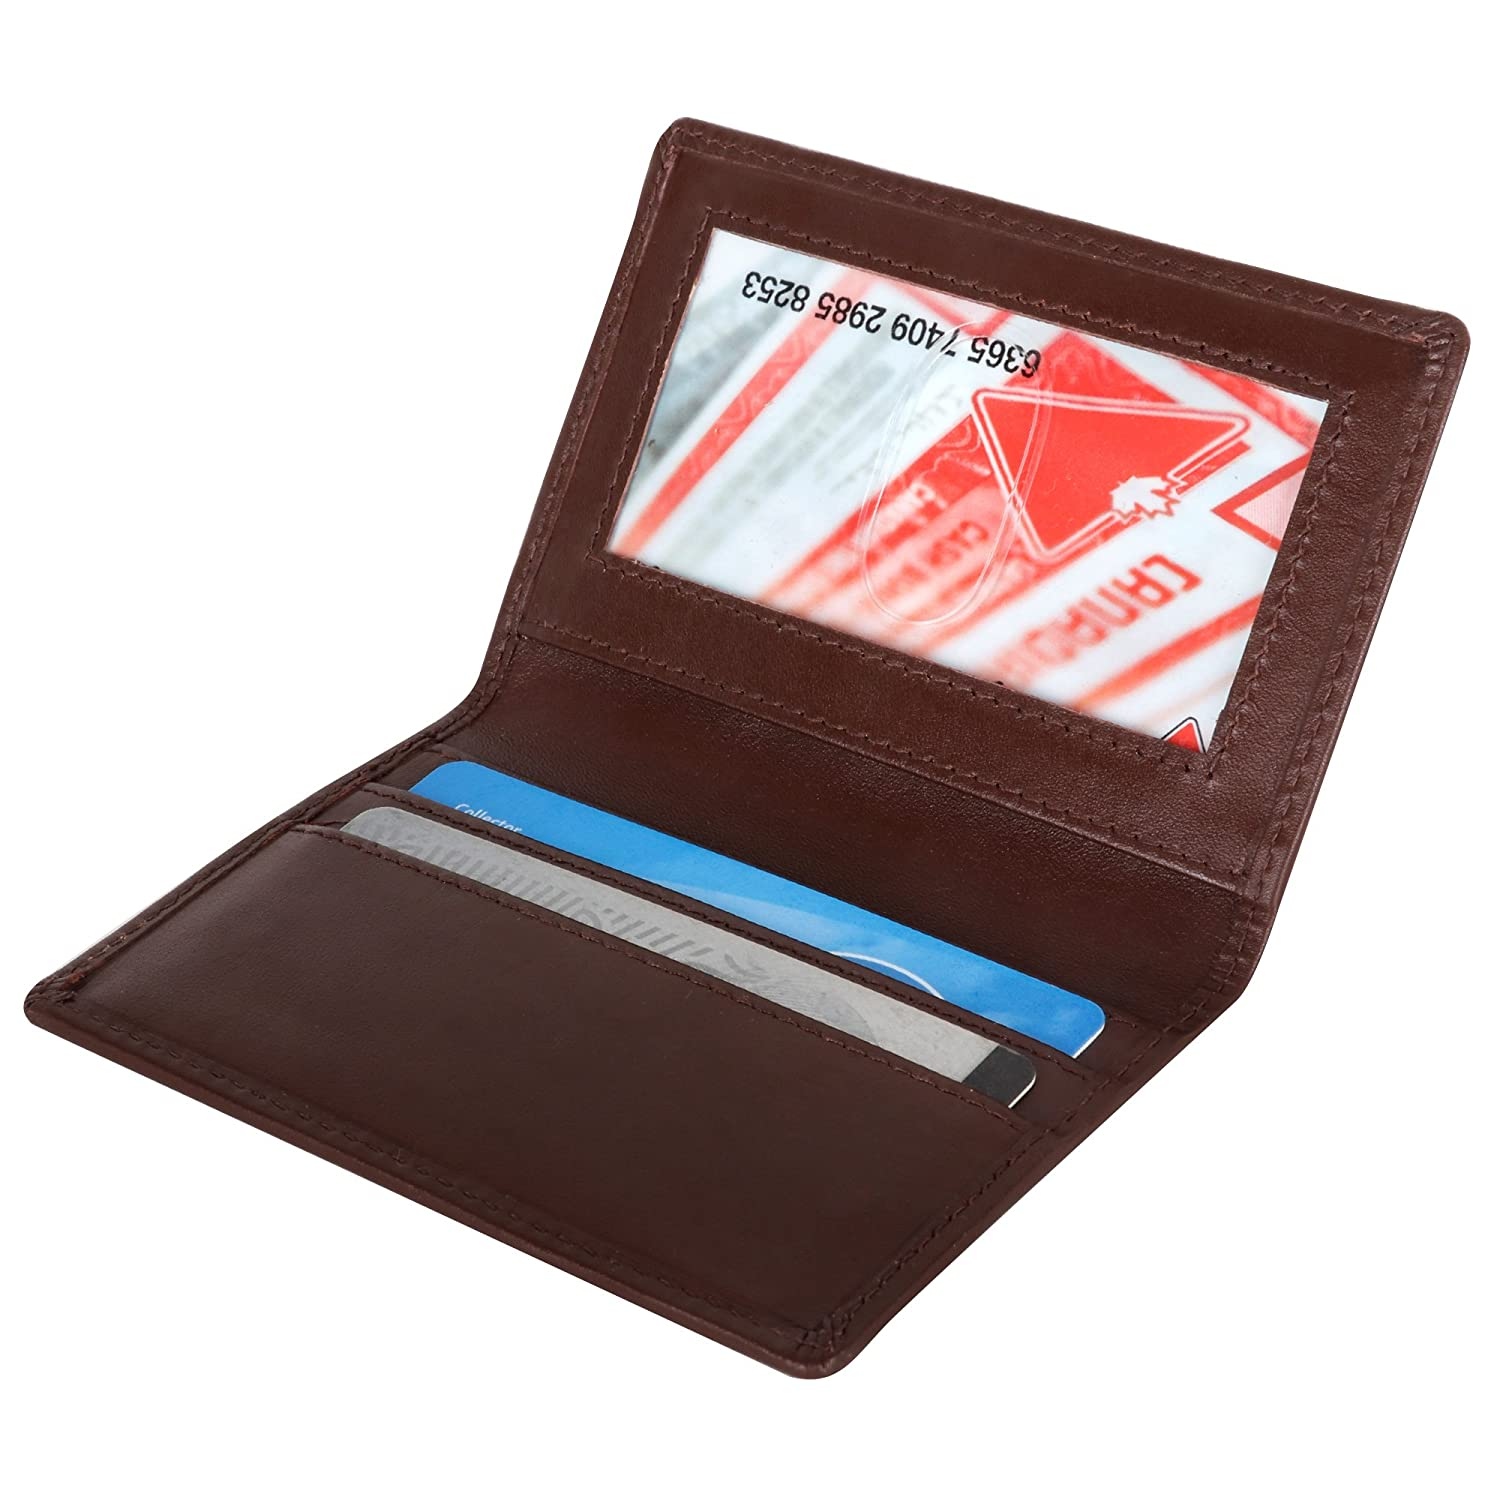 Minimalist Bifold Credit card Slim Wallet SD 026 (Black)